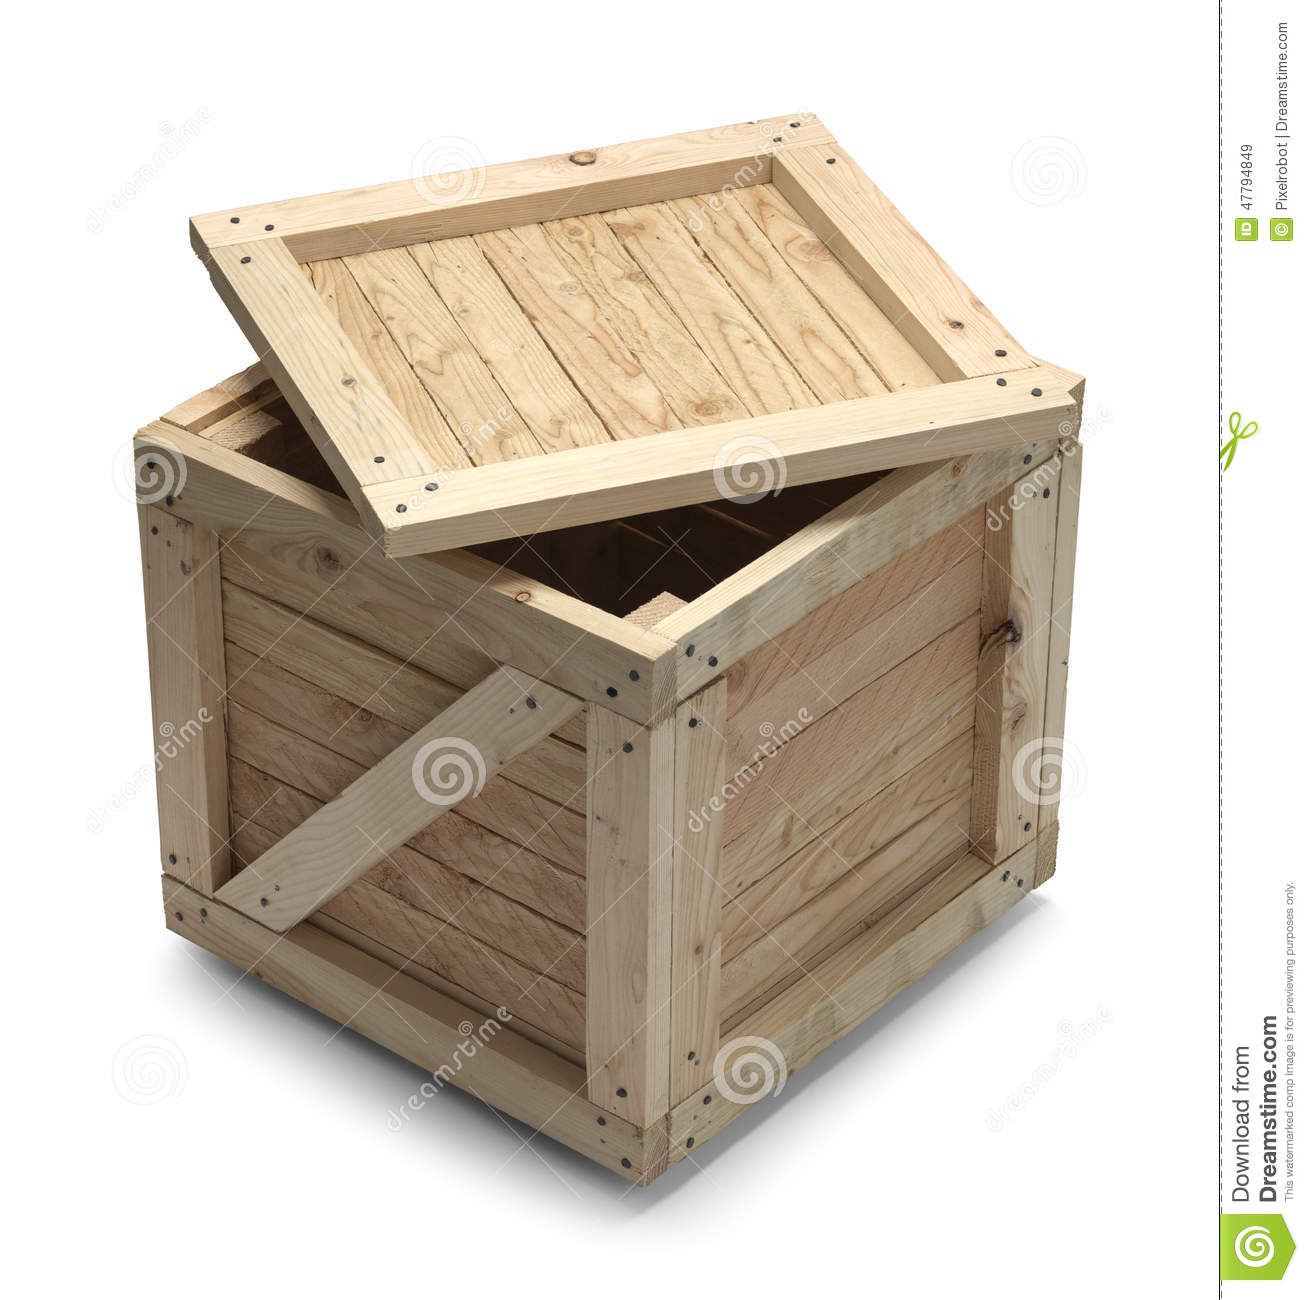 Wood Crate And Lid Stock Image Image Of Business Carton